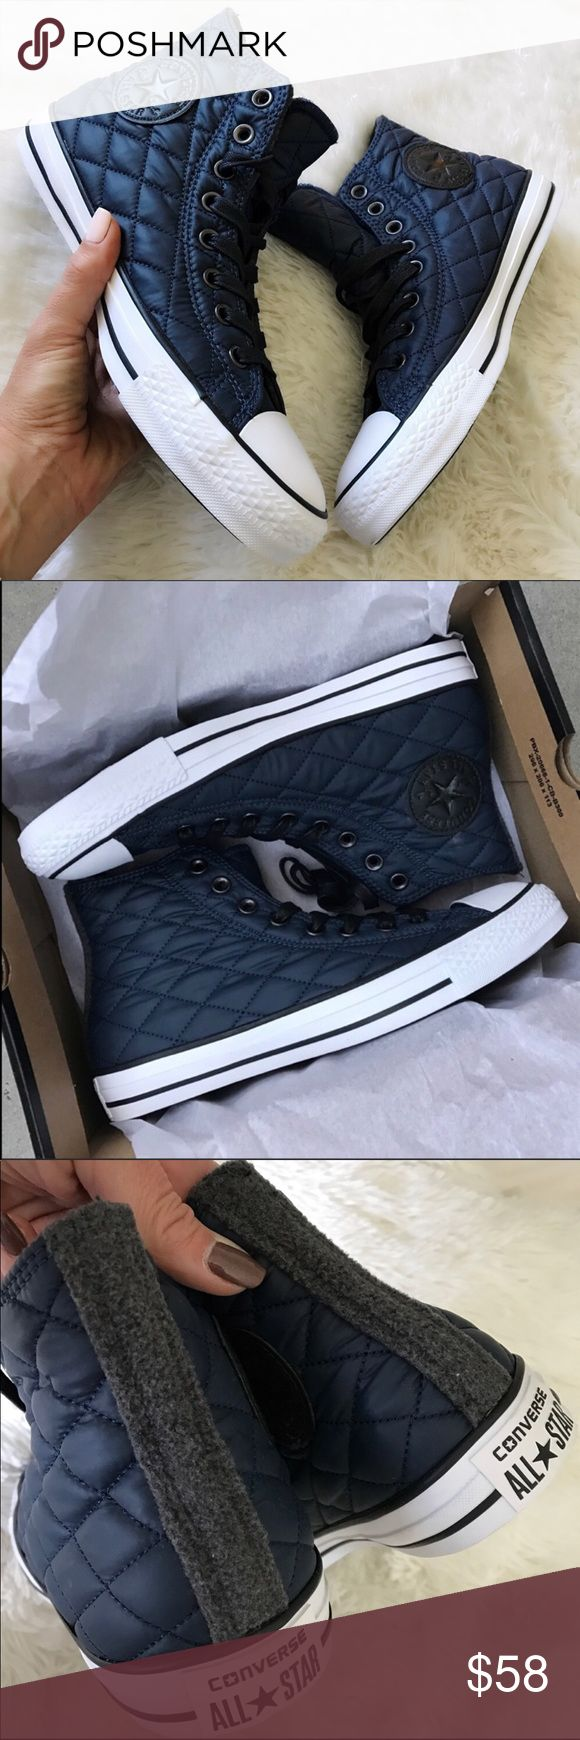 NEW ☃️ CHUCK TAYLOR ALLSTAR SZ 9 women COZY TREATS FOR YOUR FEETS ☃️ NEW WITH BOX 👣 CONVERSE CHUCK TAYLOR CONVERSE ALL STAR. NEW NEVER WORN. Unisex shoe. This is men's size 7 | women's size 9  Take your chucks game to a whole new level with these. QUILTED NAVY NYLON WITH GREY FLEECE DETAILS.   Ships same or next day in FULL original converse box. Smoke free home. PERFECT FOR GIFT GIVING 🎁  Bundle items to save. Shop with posh and don't pay the sales tax! 🤑  100% AUTHENTIC AND DIRECT FROM…